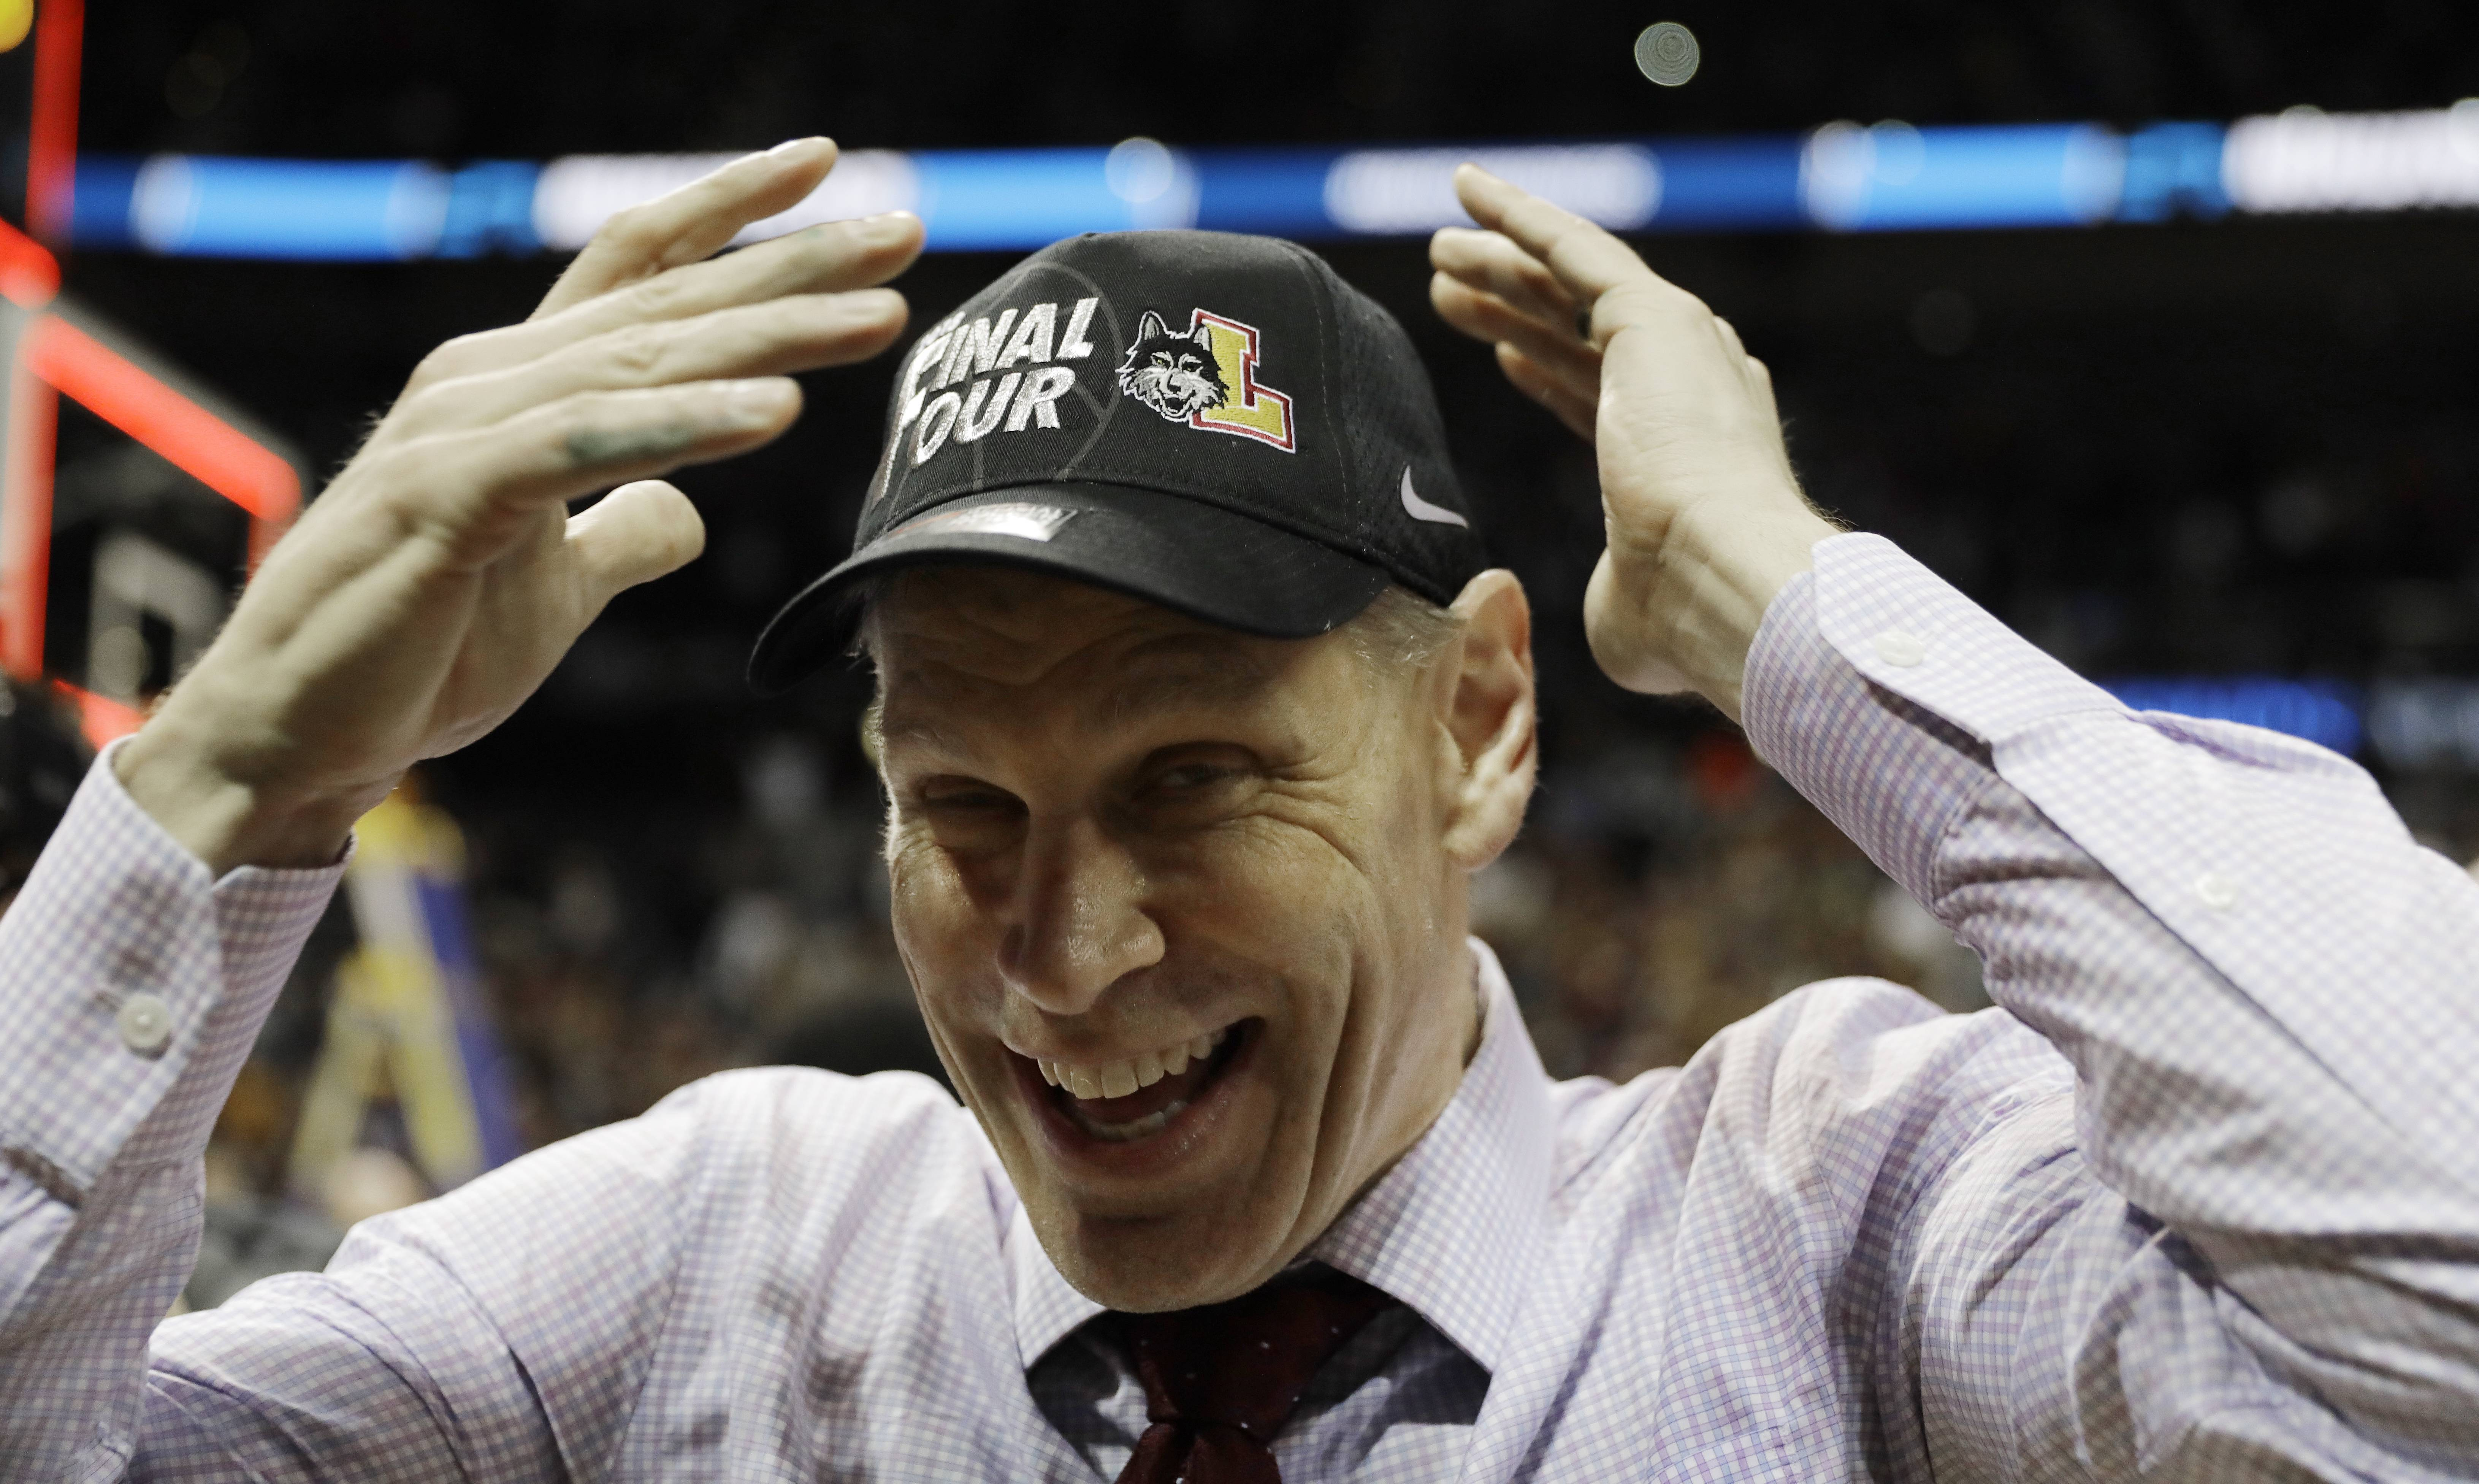 Loyola men's basketball coach Porter Moser, a Naperville native, has signed a new contract that runs through the 2025-26 season. The Ramblers reached the NCAA Final Four with a school record 32 wins last season.